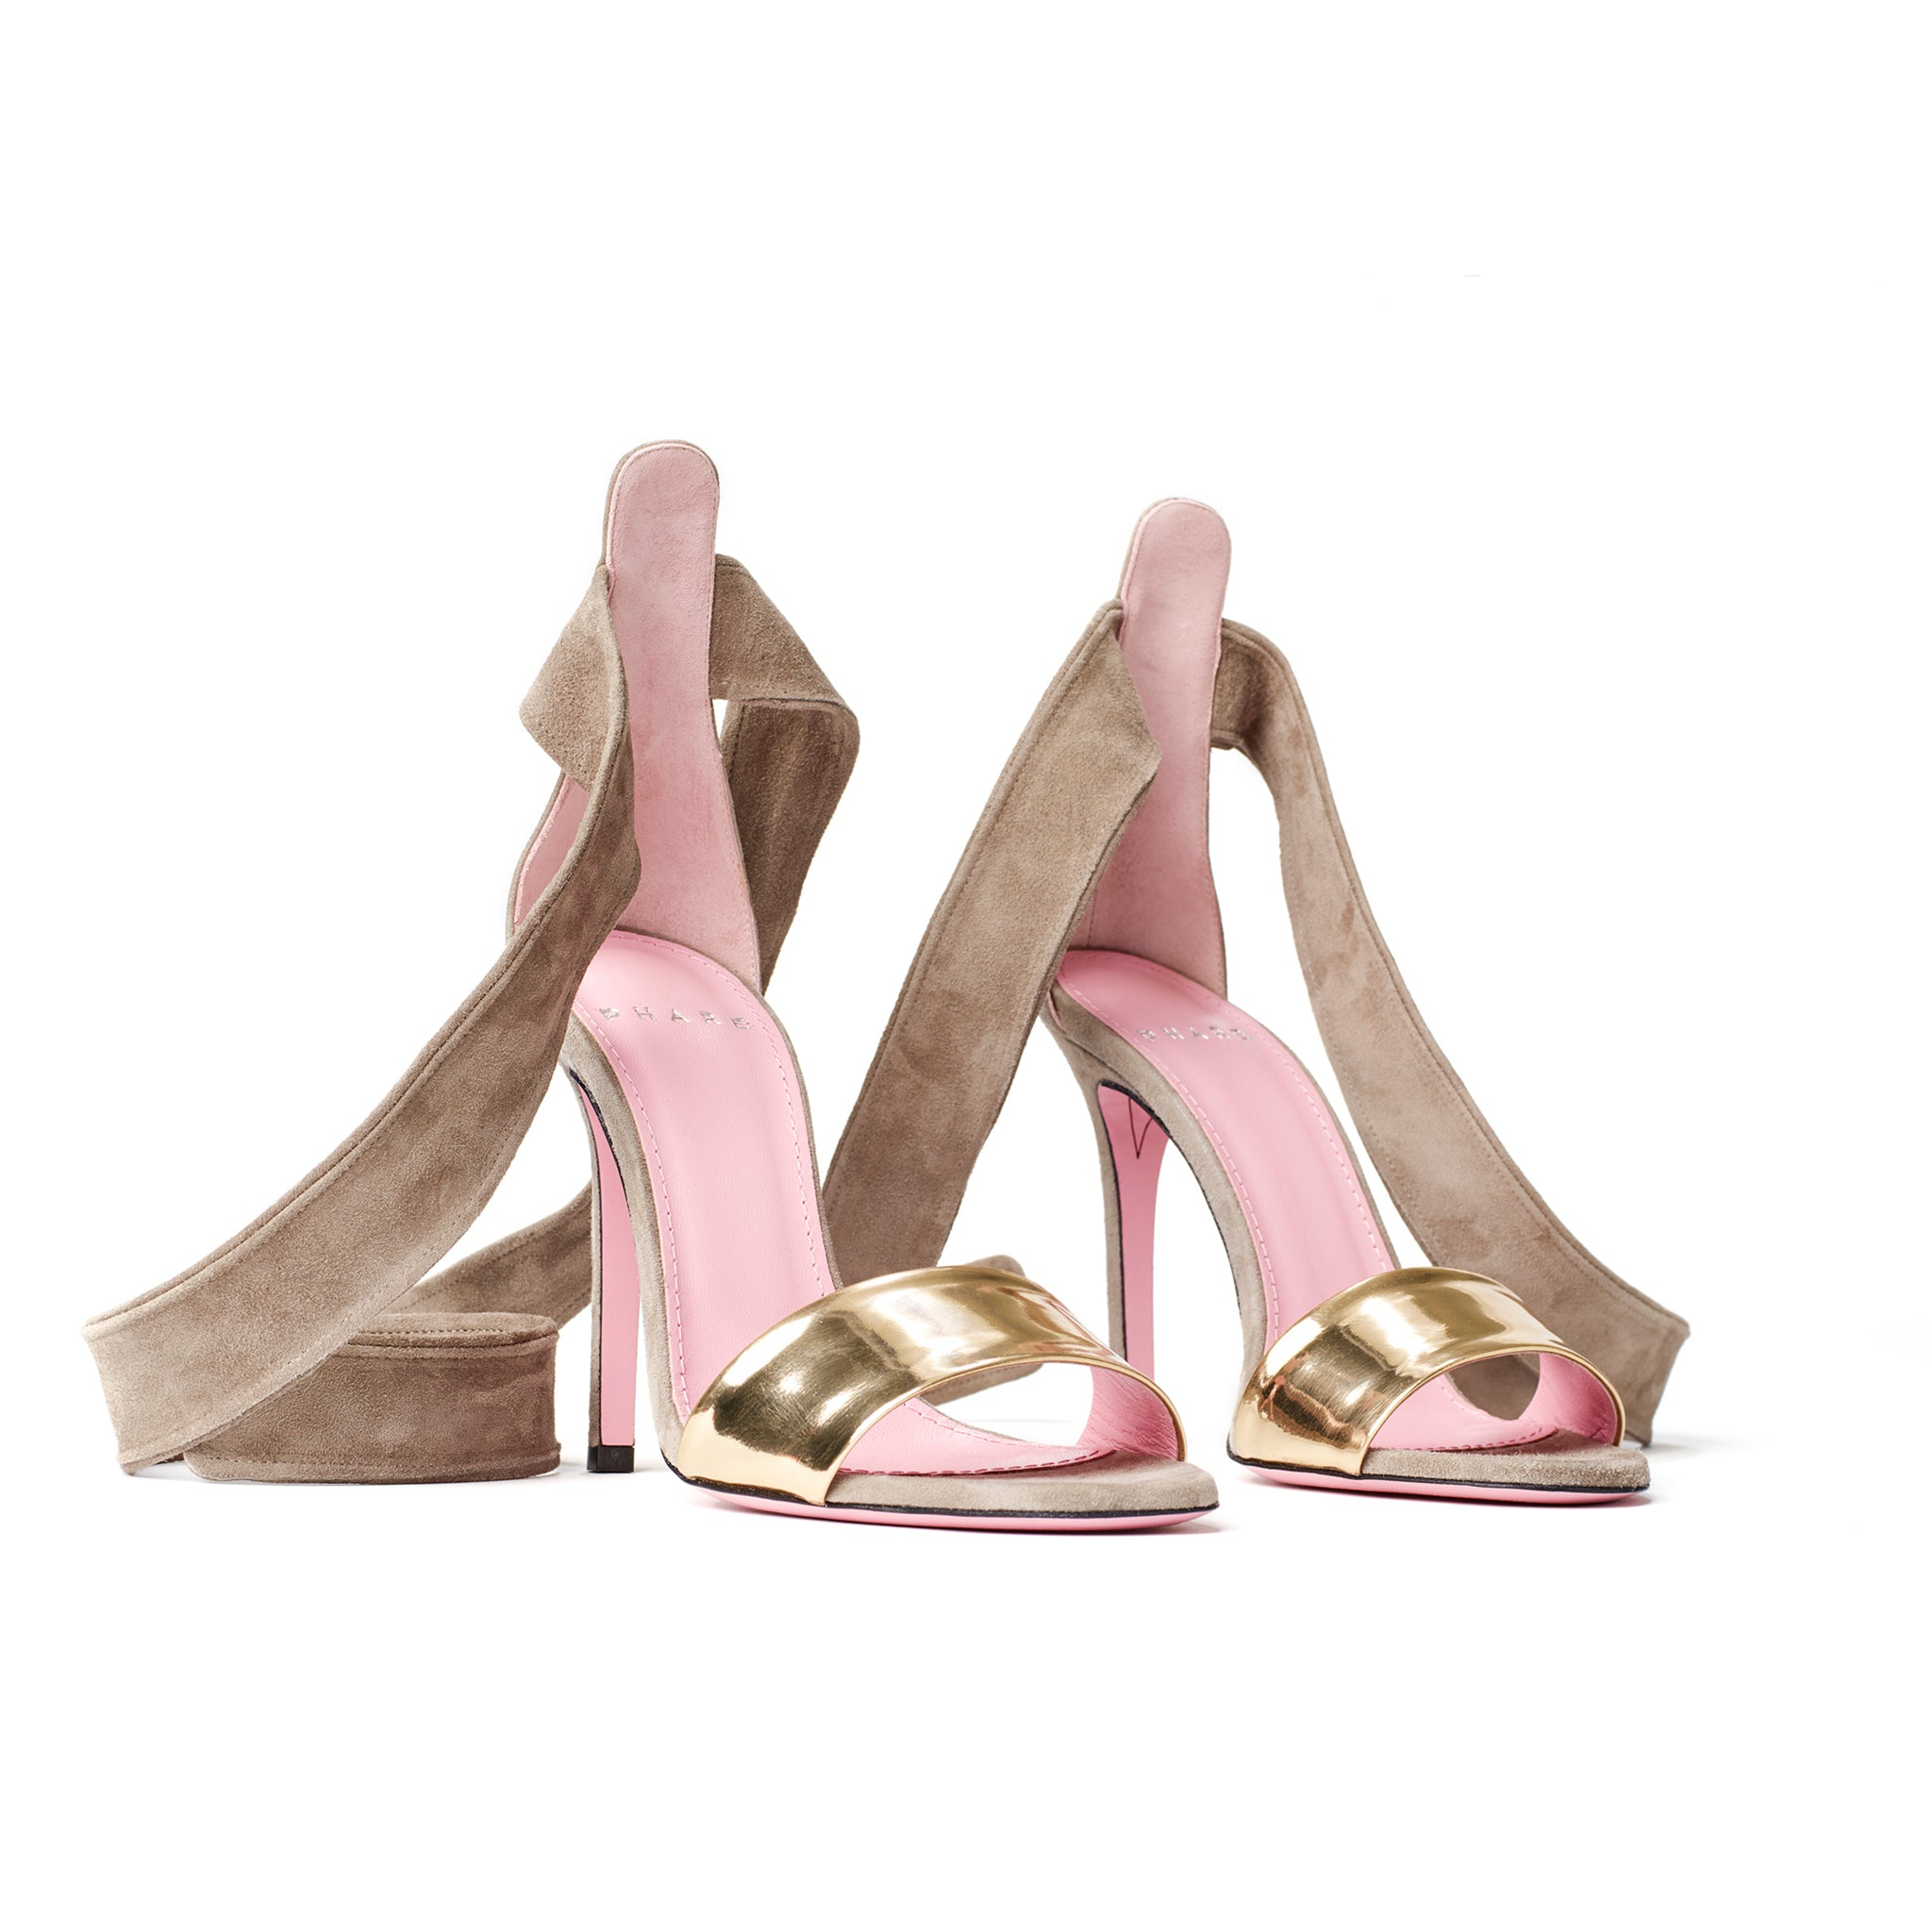 Phare Ankle tie stiletto in taupe suede 3/4 view